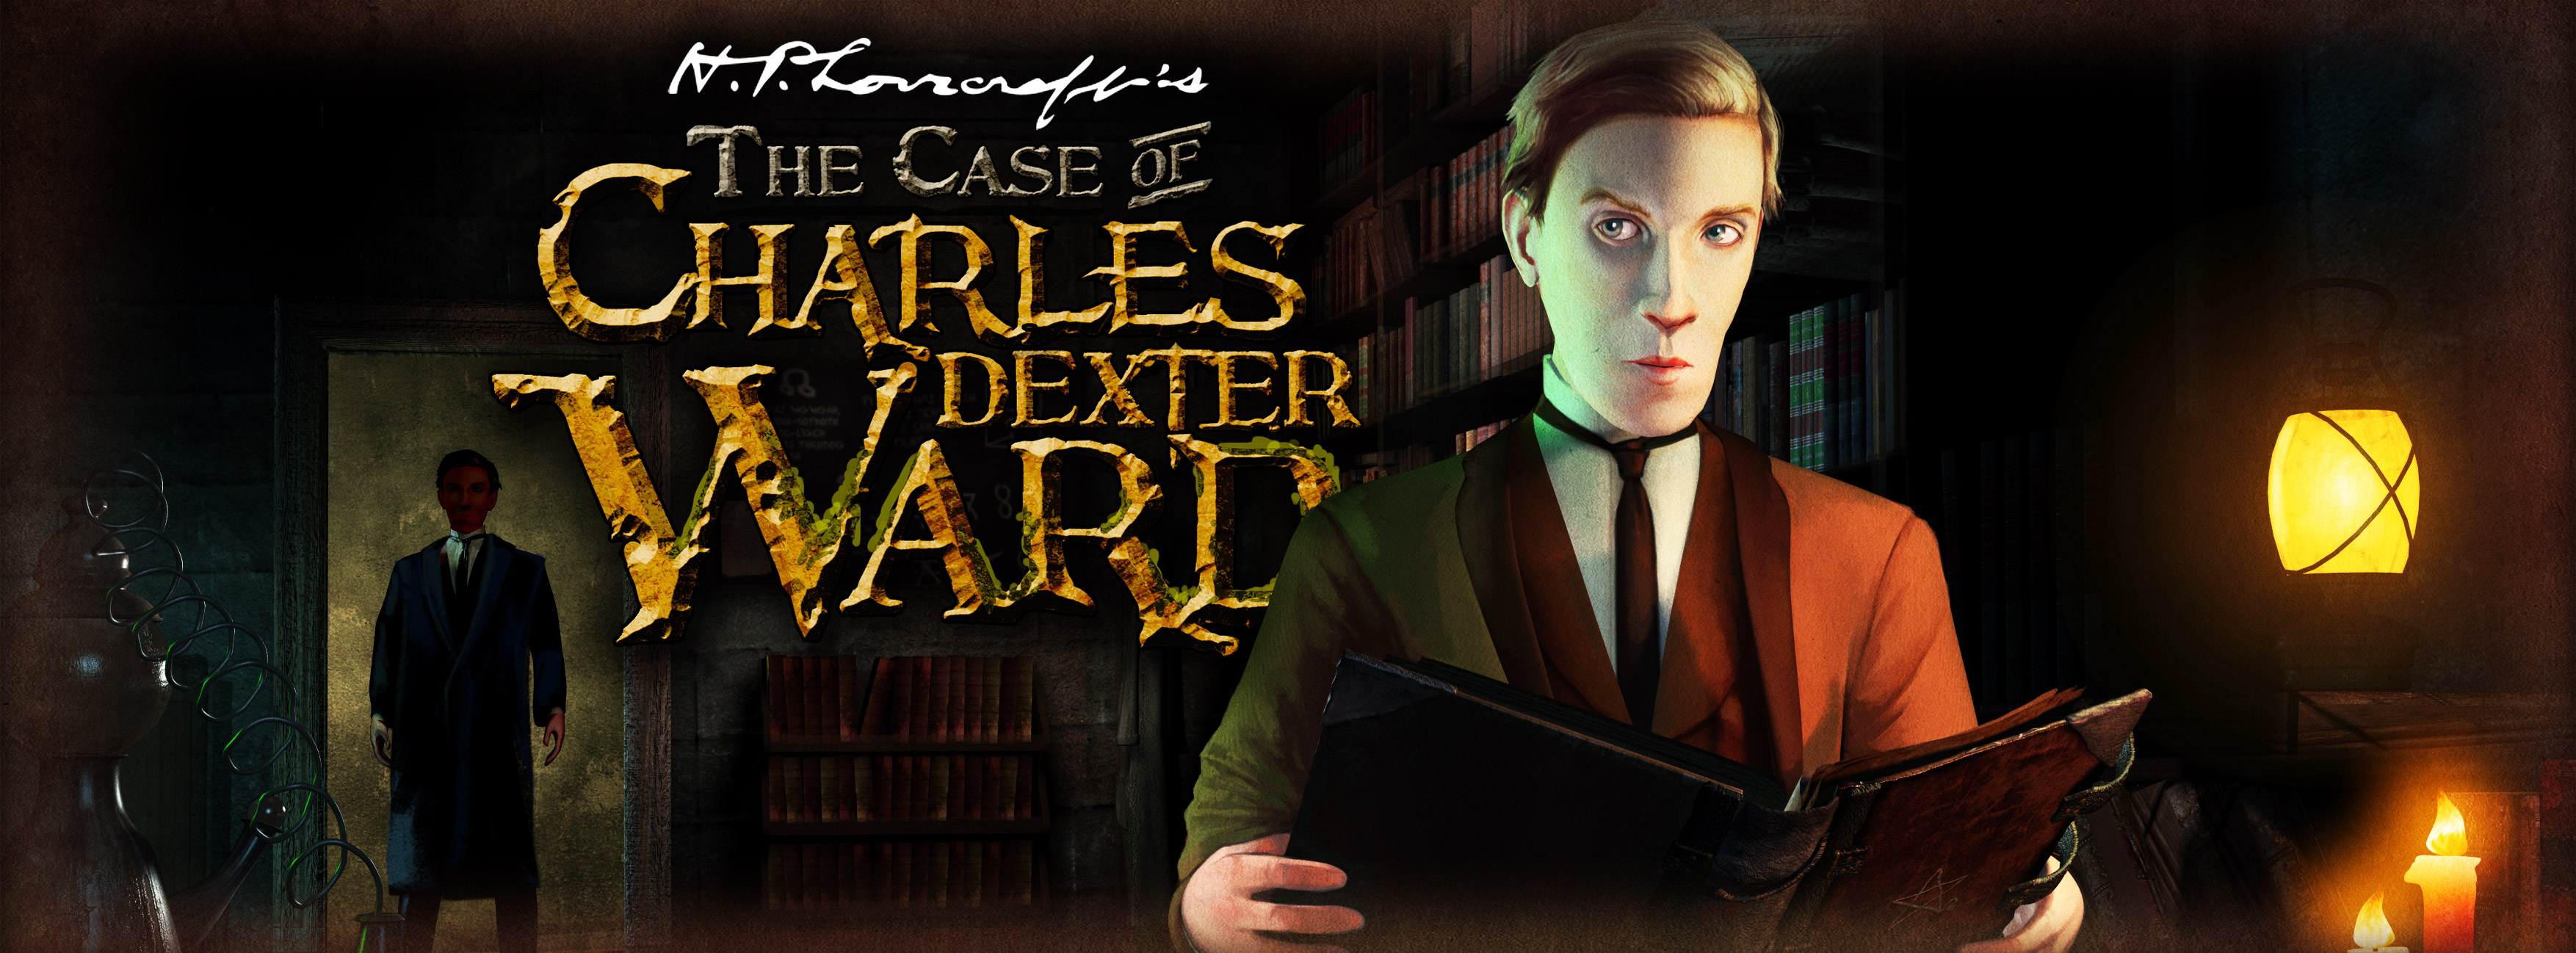 The Case of Charles Dexter Ward - bannière